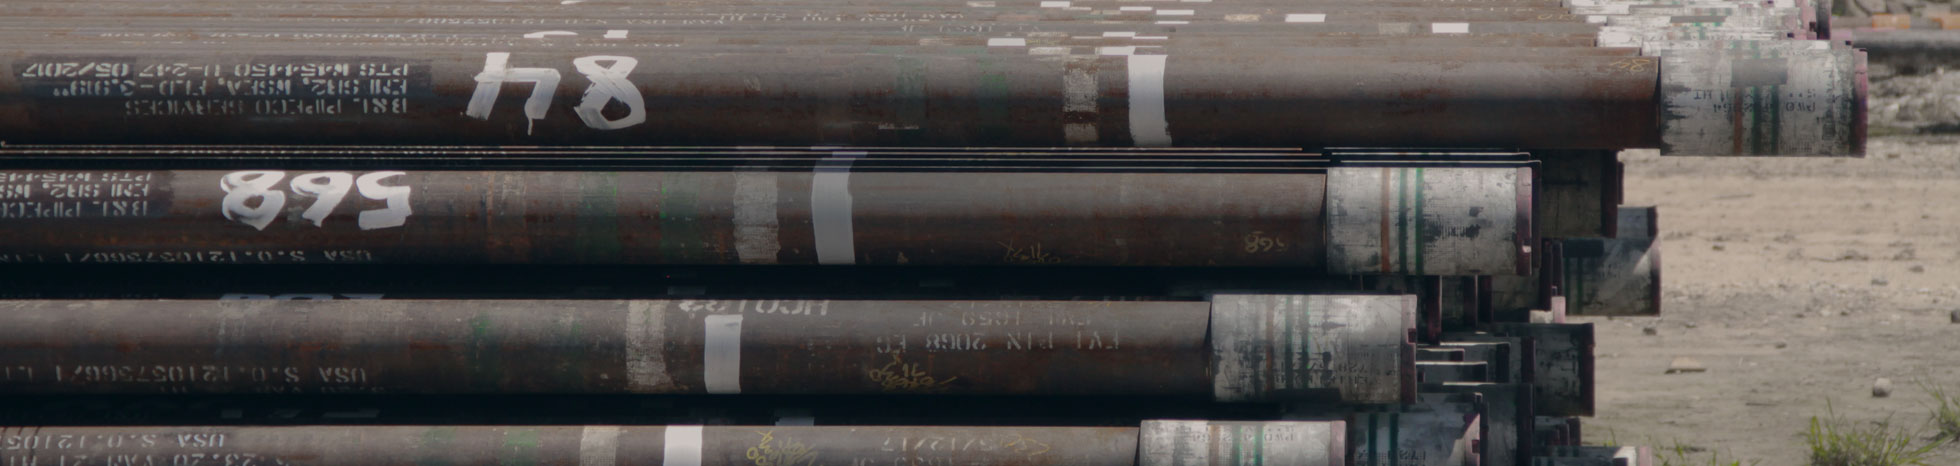 Casing & Tubing Products | B&L Pipeco Services